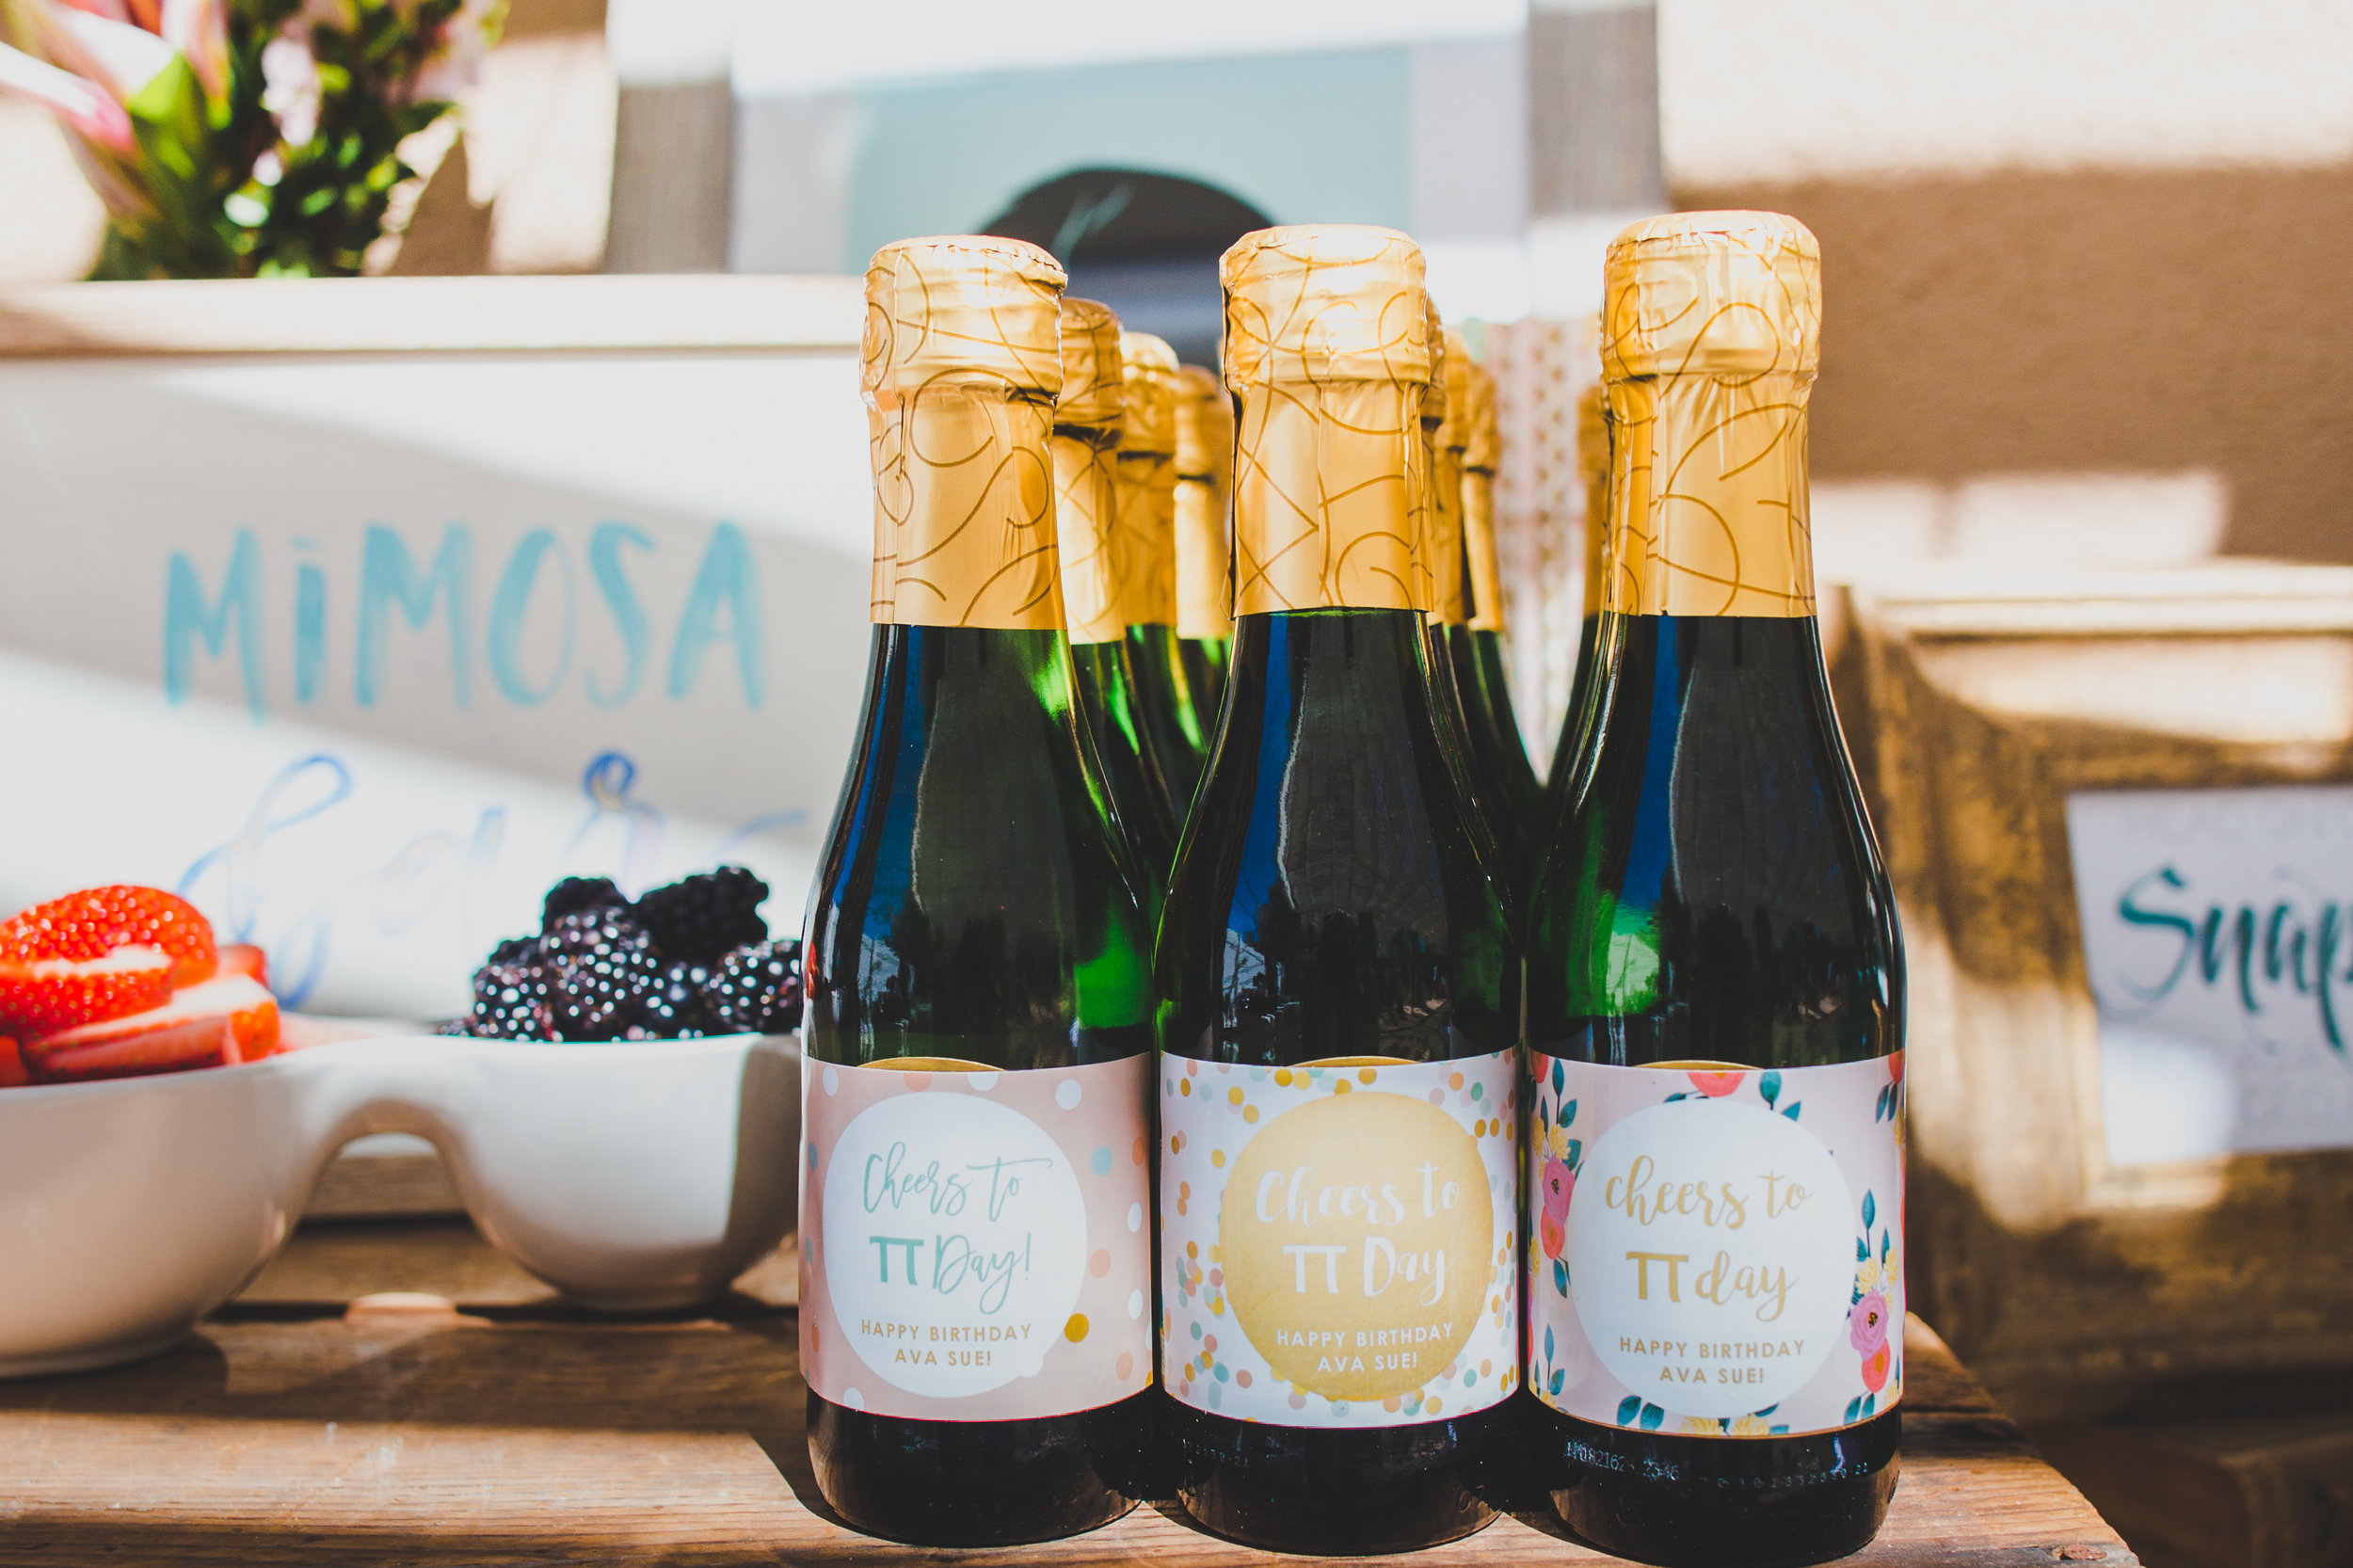 Personalized Champagne Bottle Labels - A Vintage Chic Pi Day Themed 1st Birthday Party